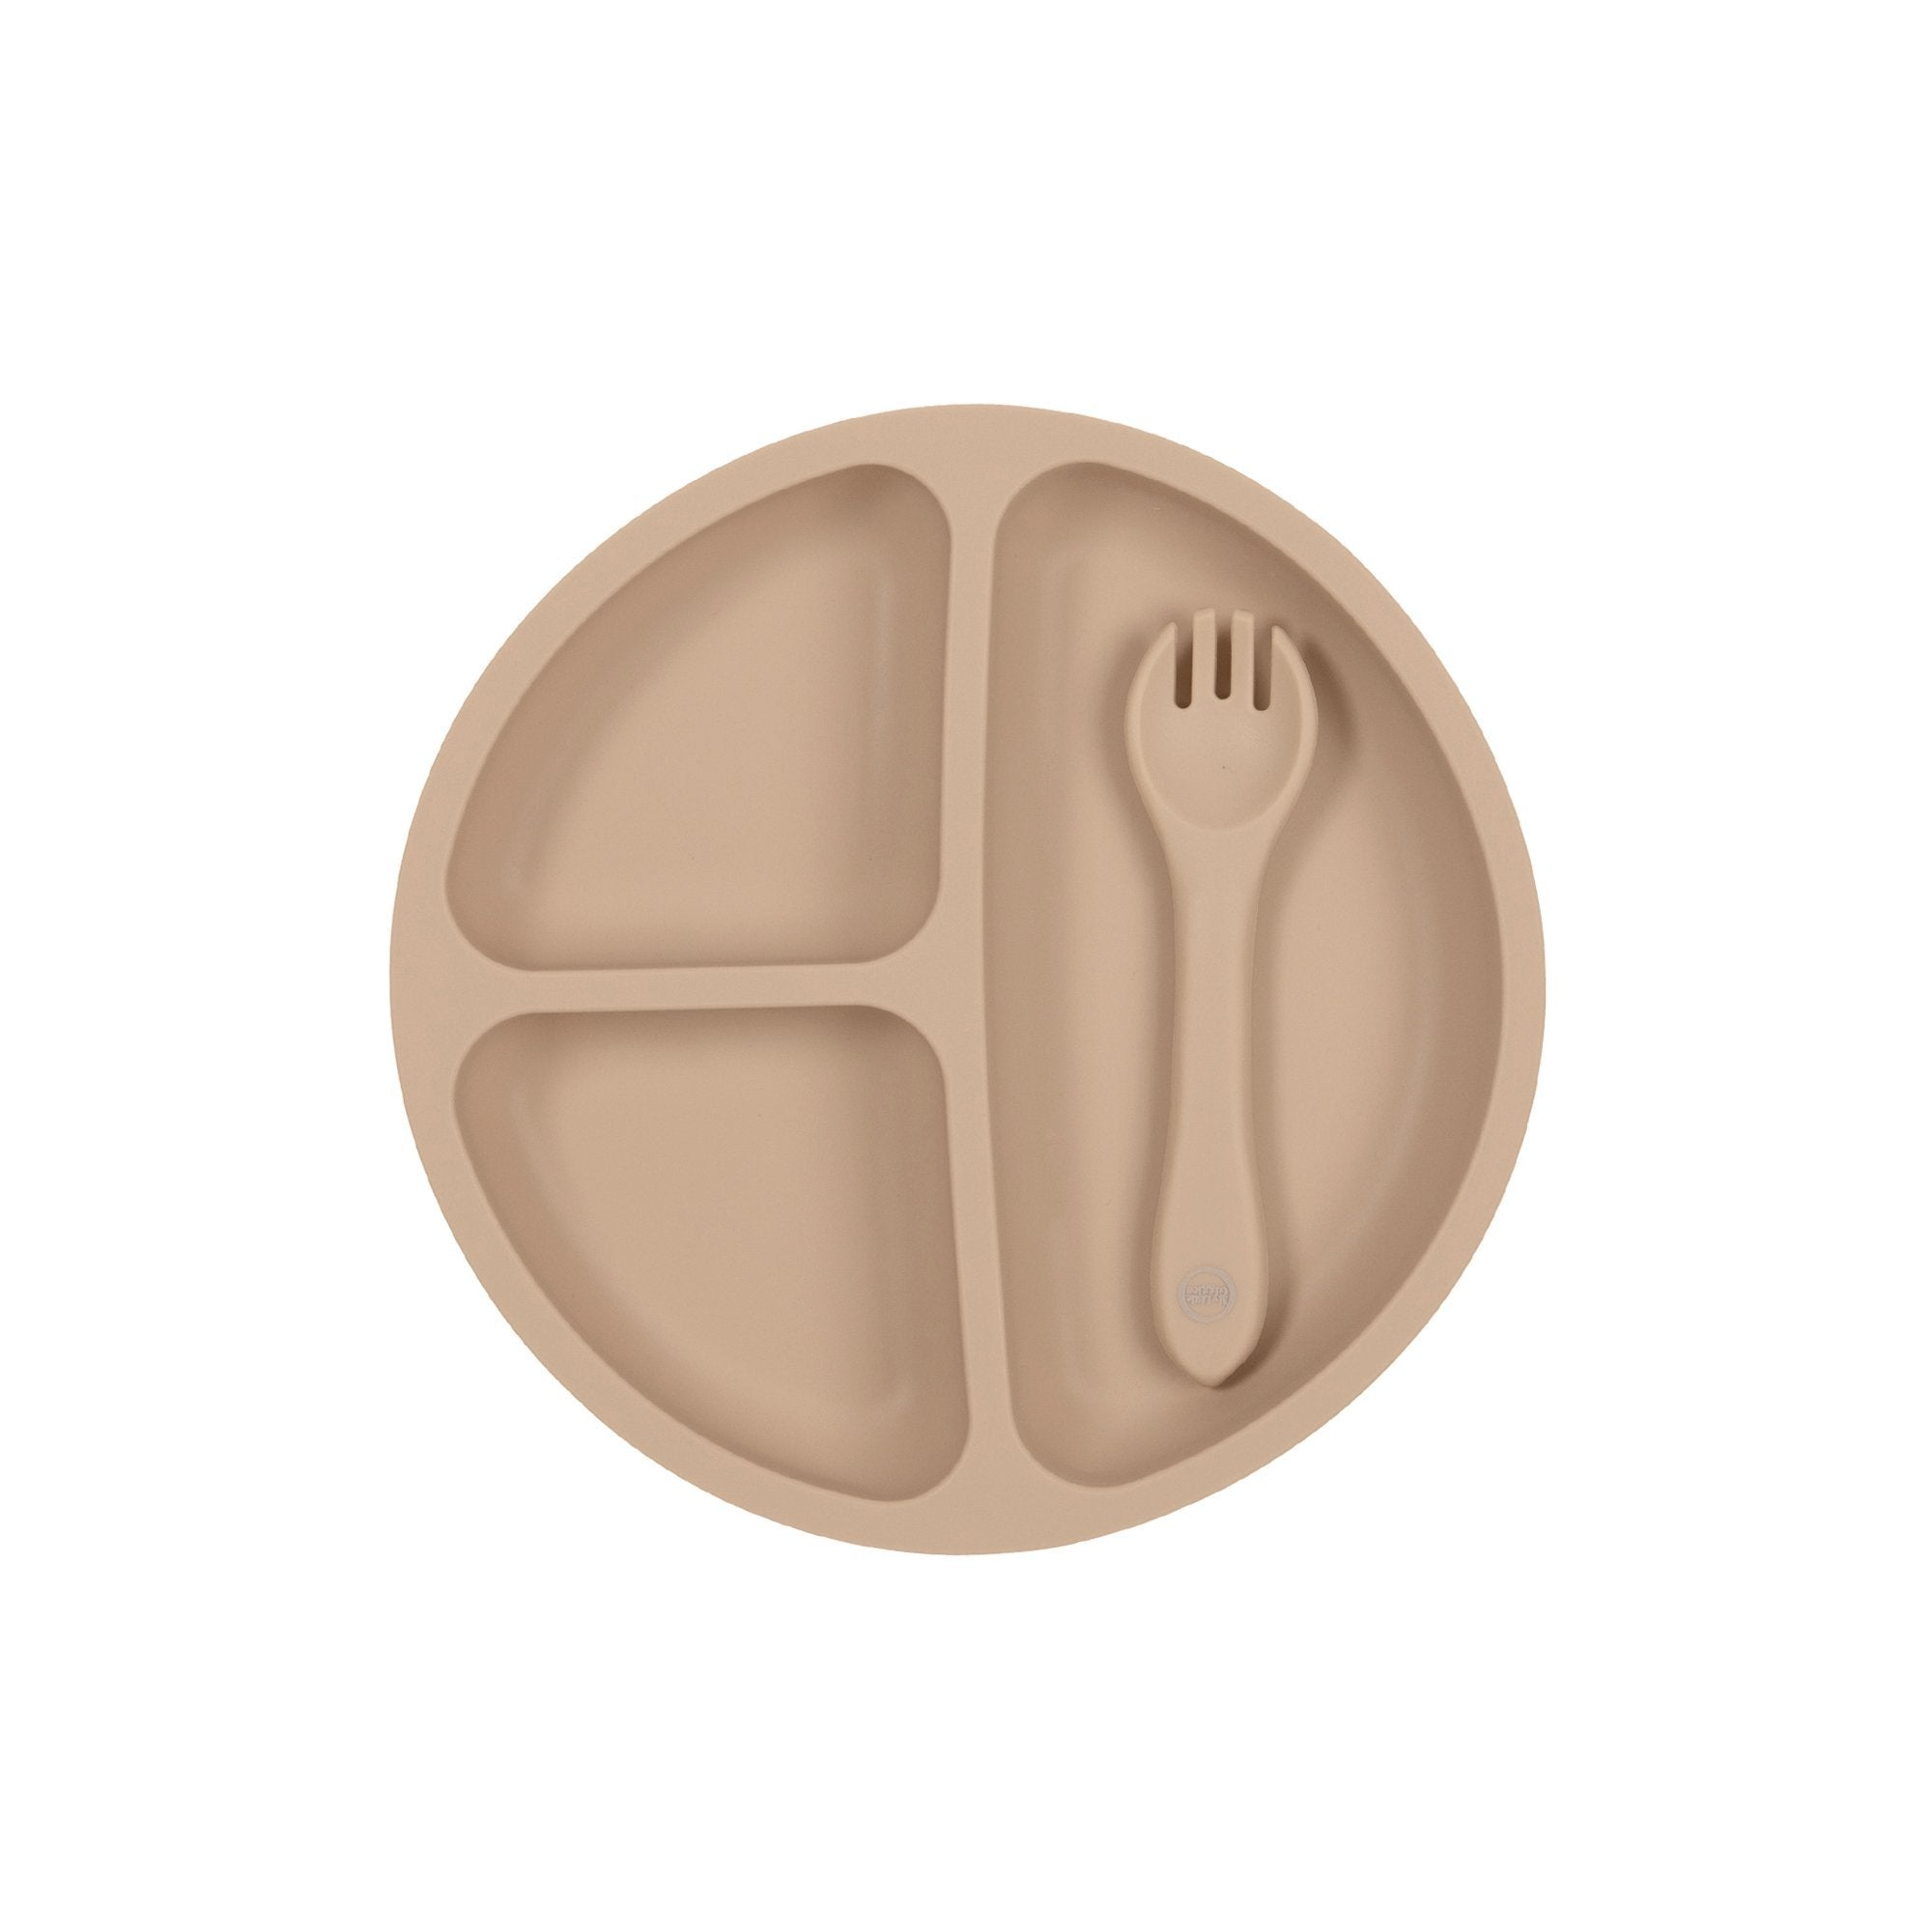 Muted - Suction Plate & Spoon Set - My Little Giggles